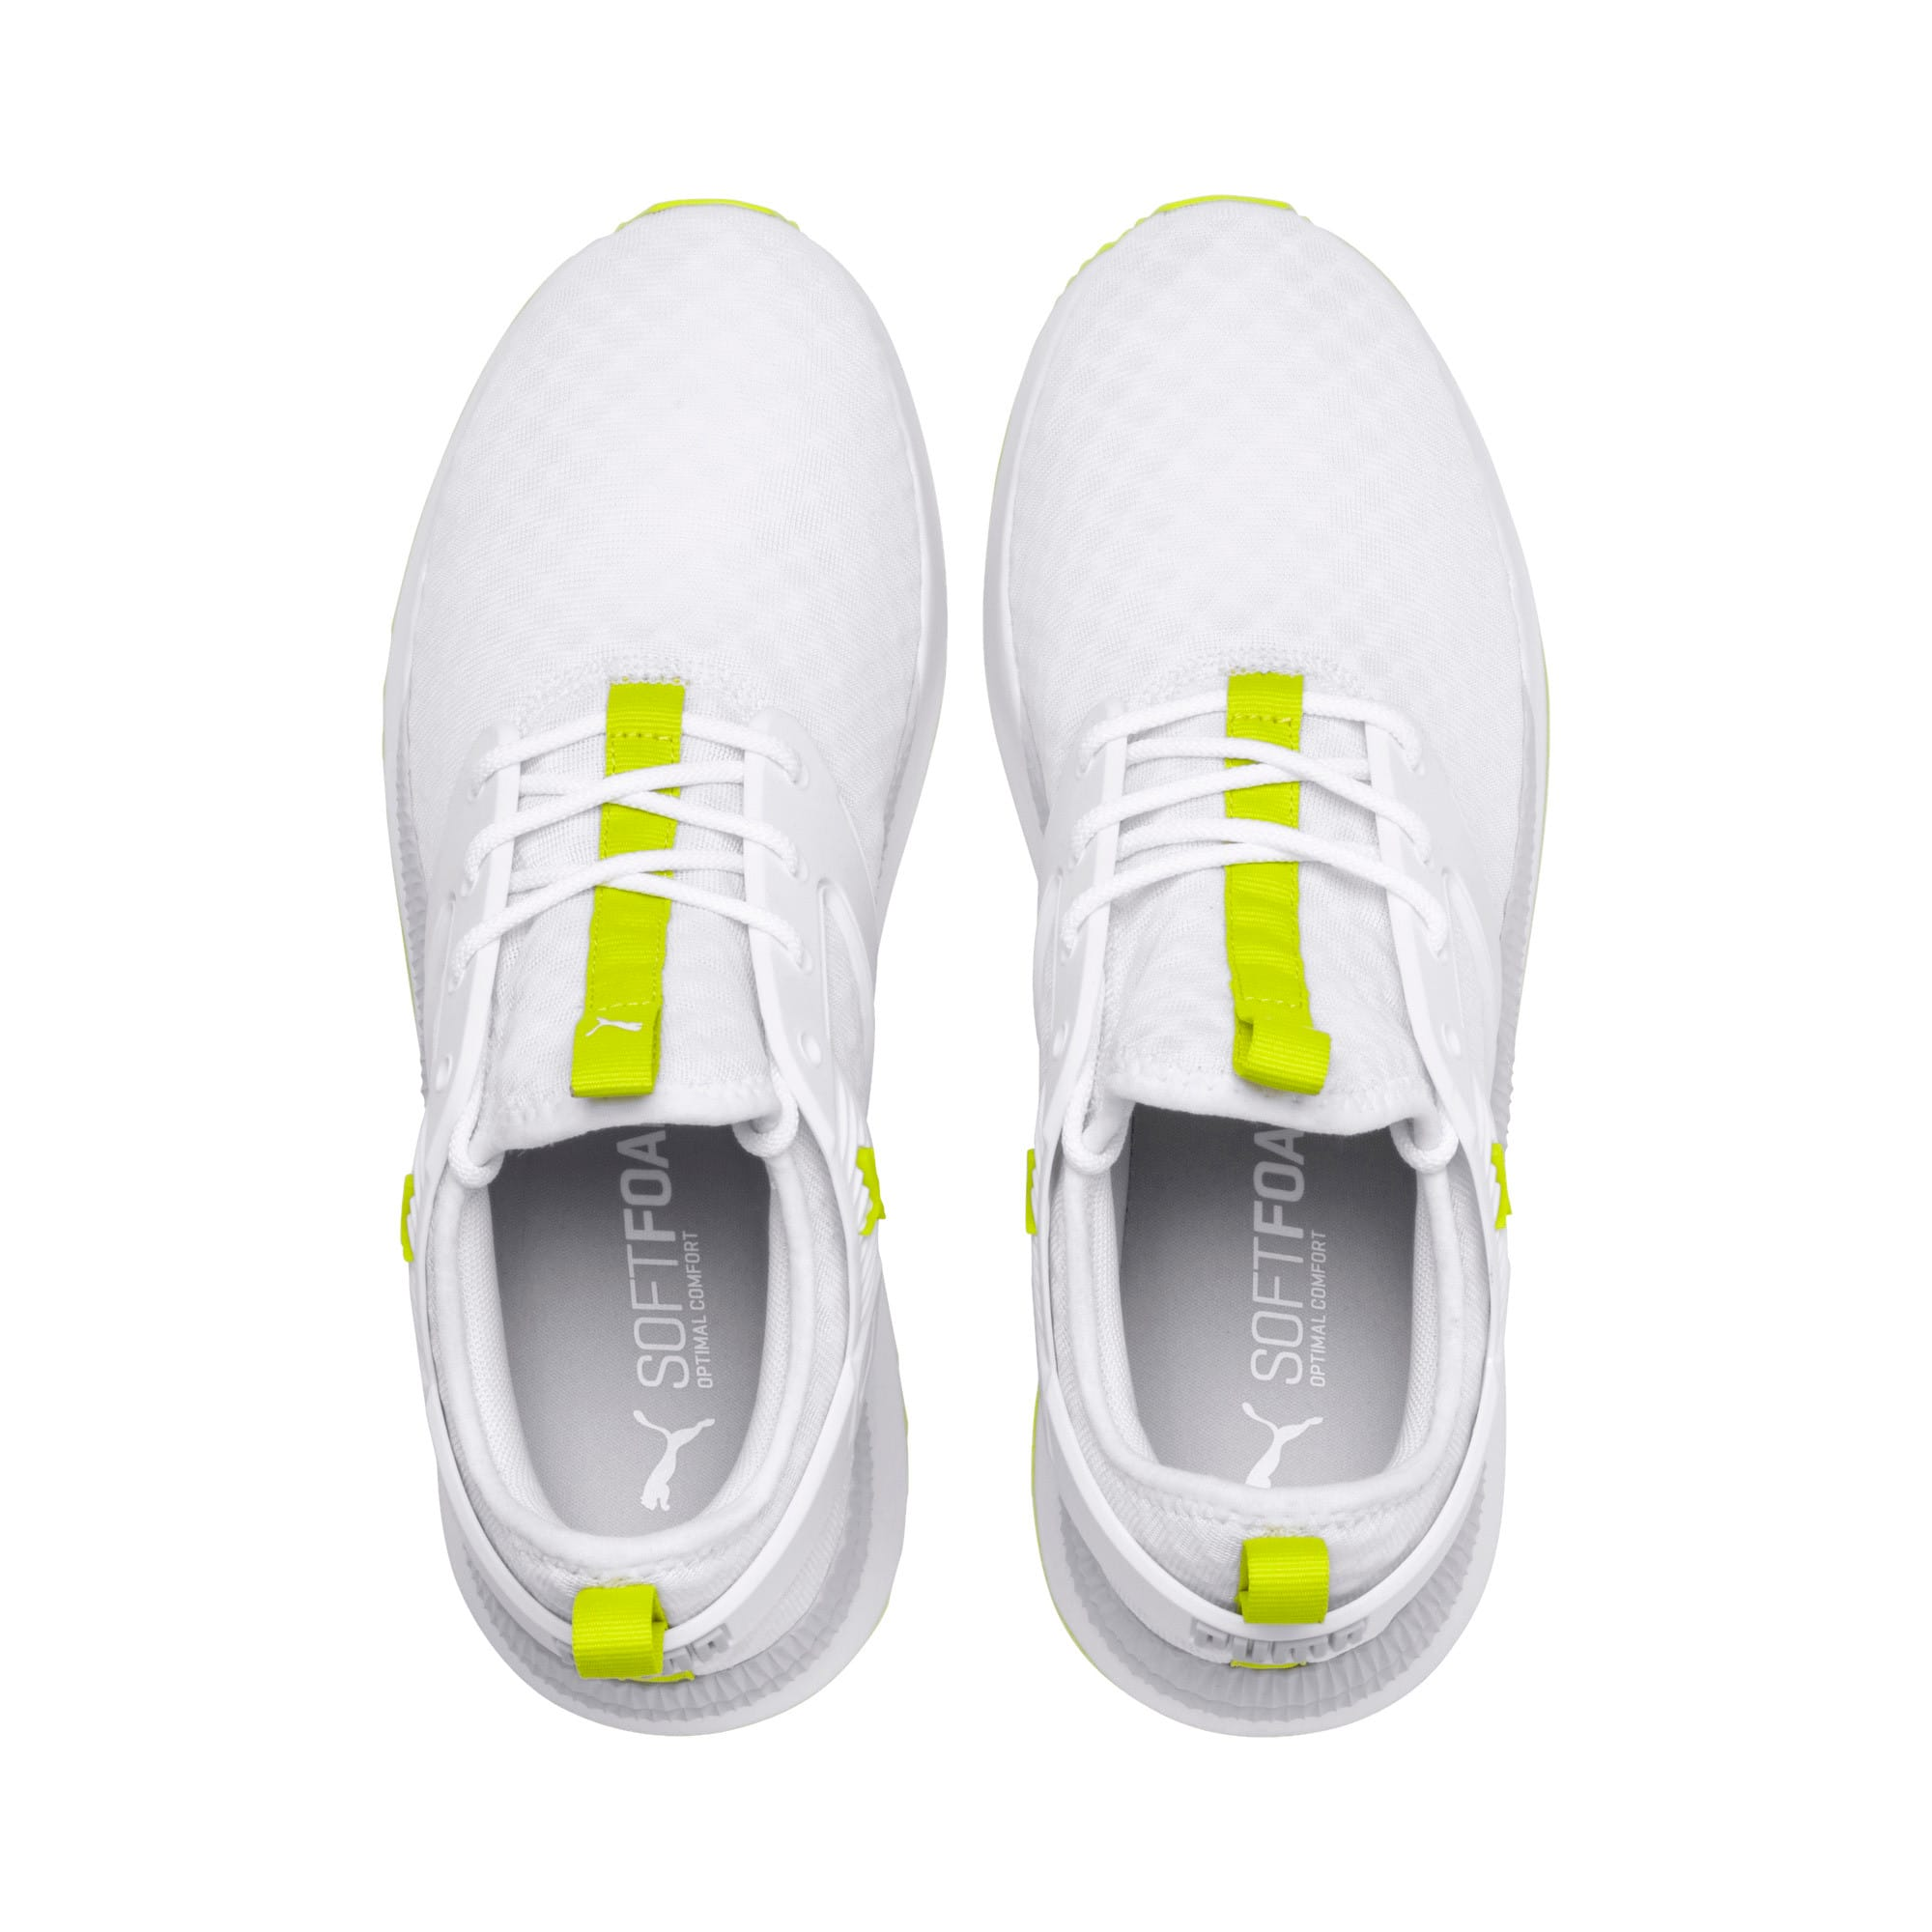 Thumbnail 7 of Pacer Next Excel Core Sneakers, Puma White-Nrgy Yellow, medium